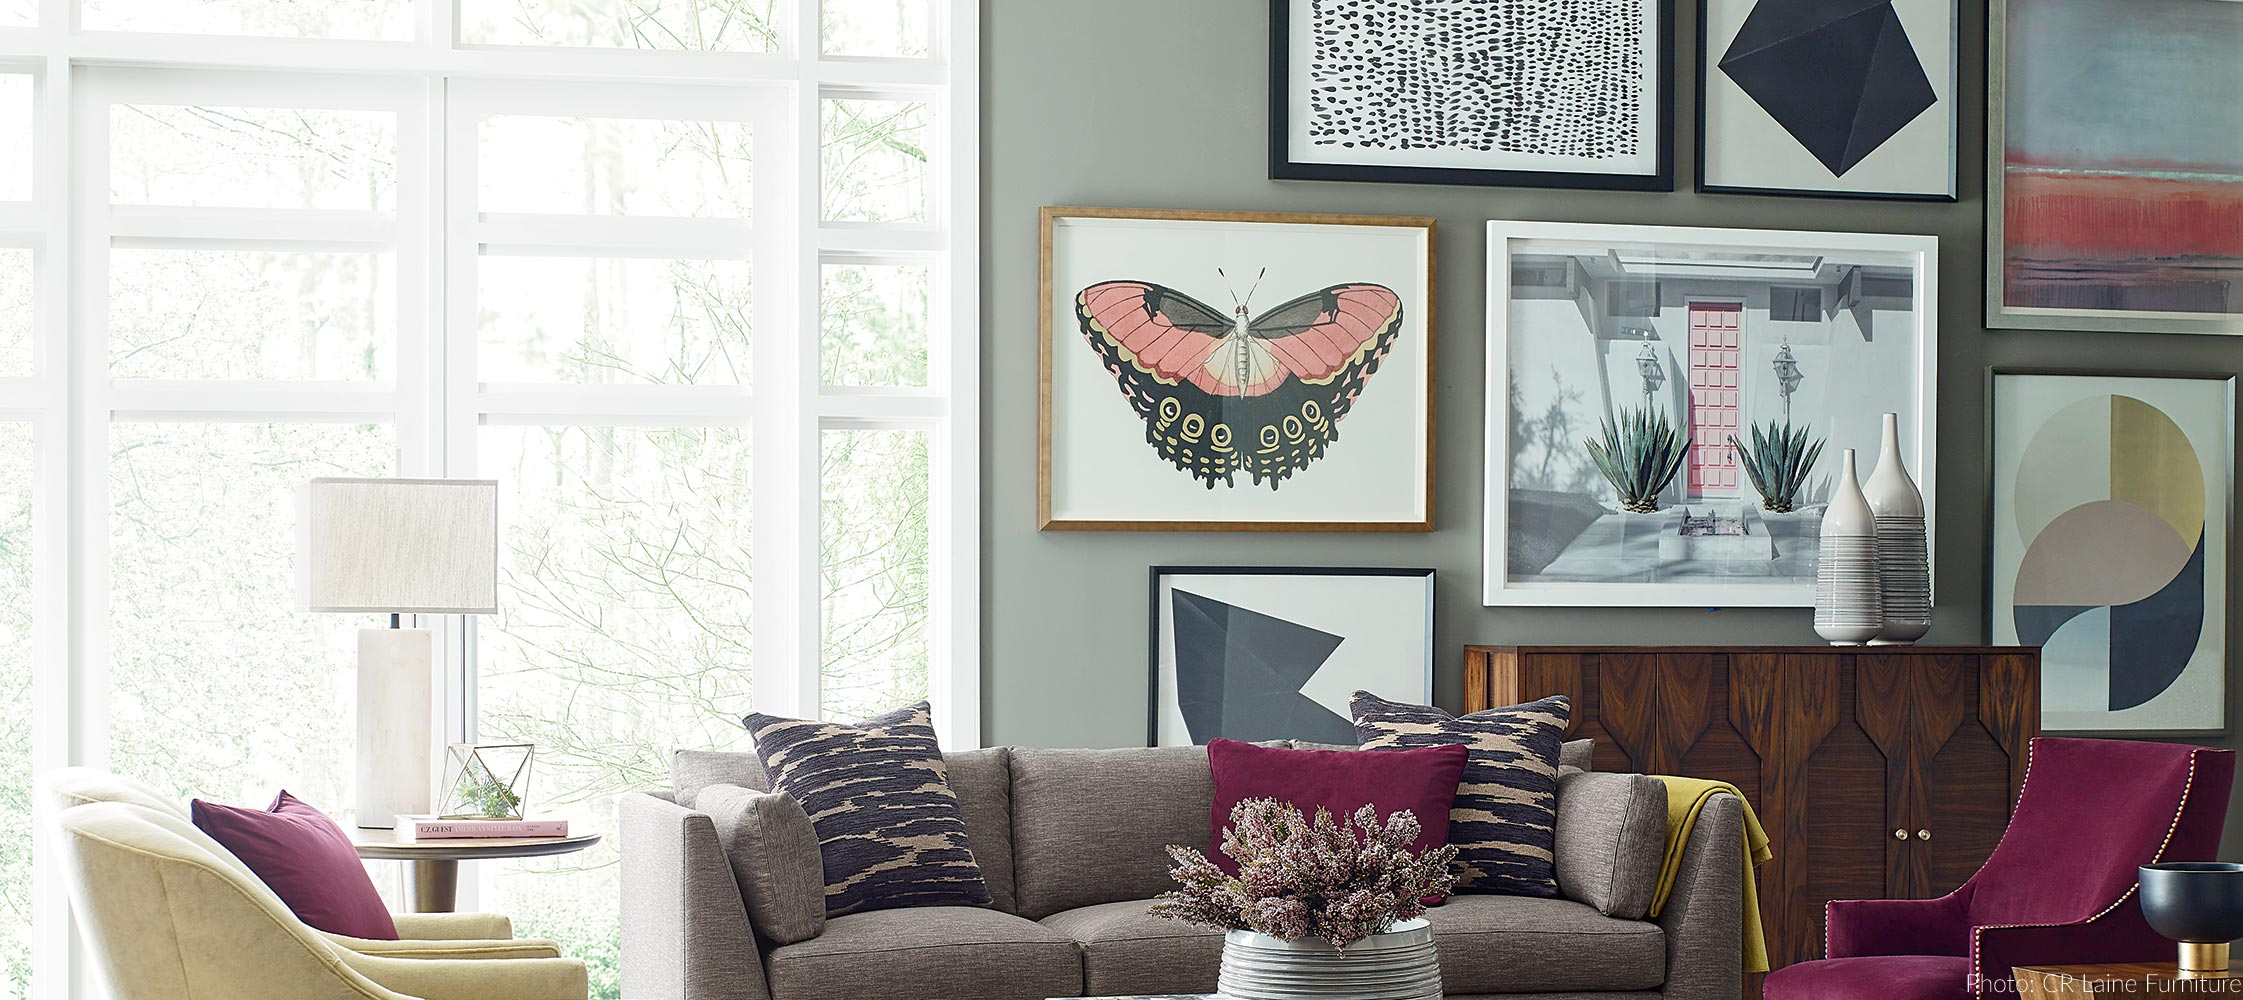 Commercial, Retail & Hospitality Wall Décor | Wendoverart Throughout 3 Piece Capri Butterfly Wall Decor Sets (View 24 of 30)